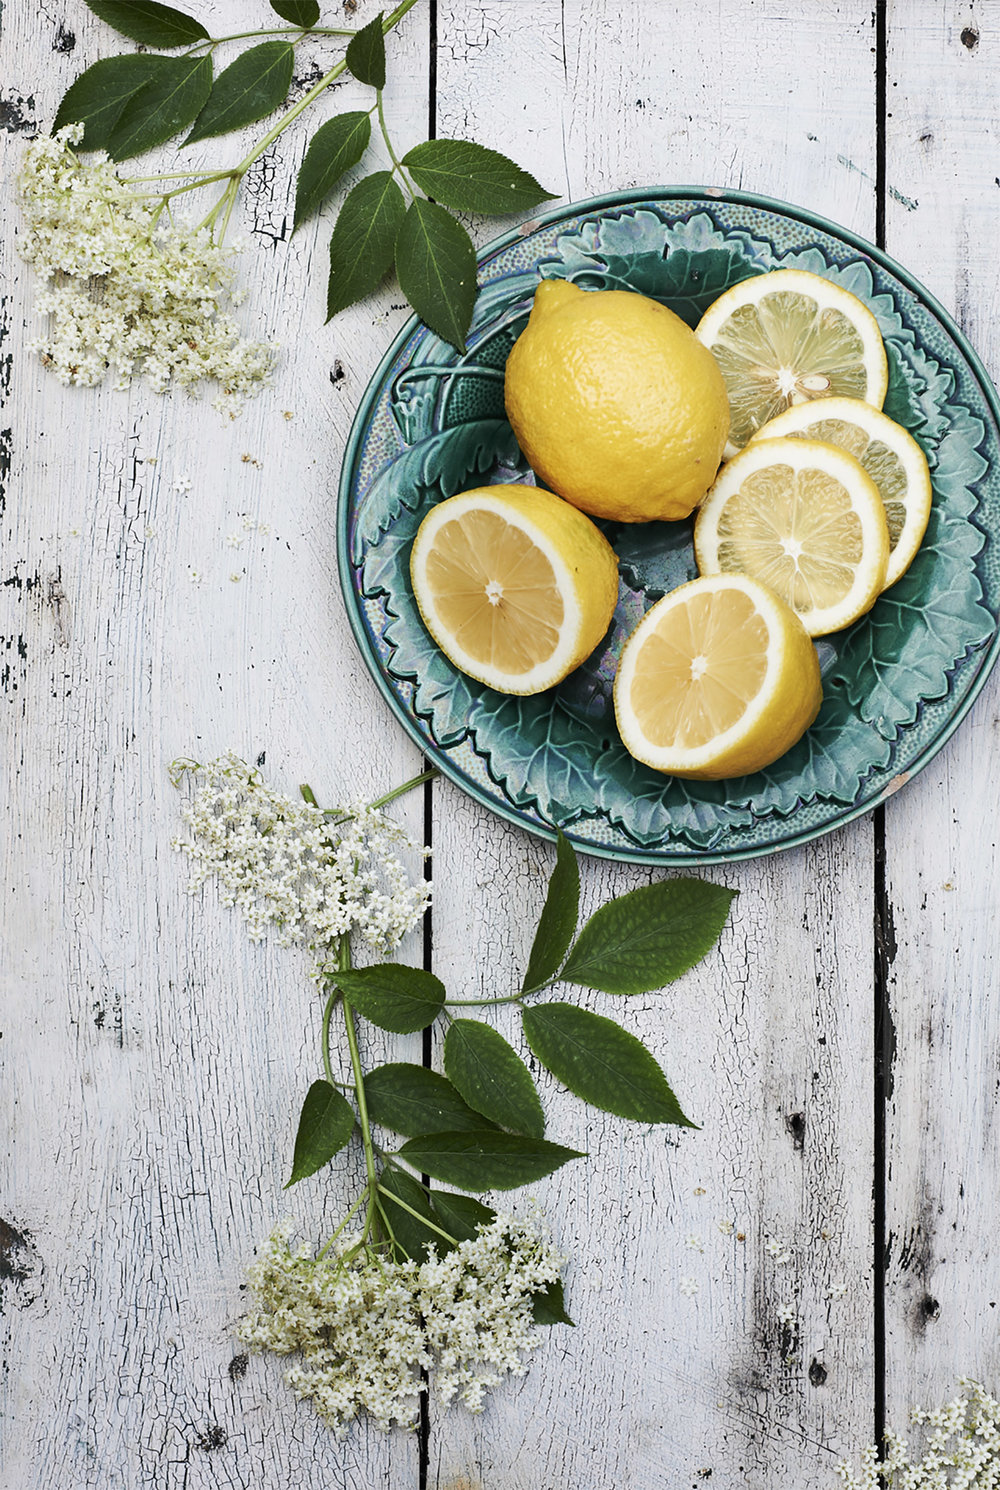 Elderflowers+lemons copy.jpg